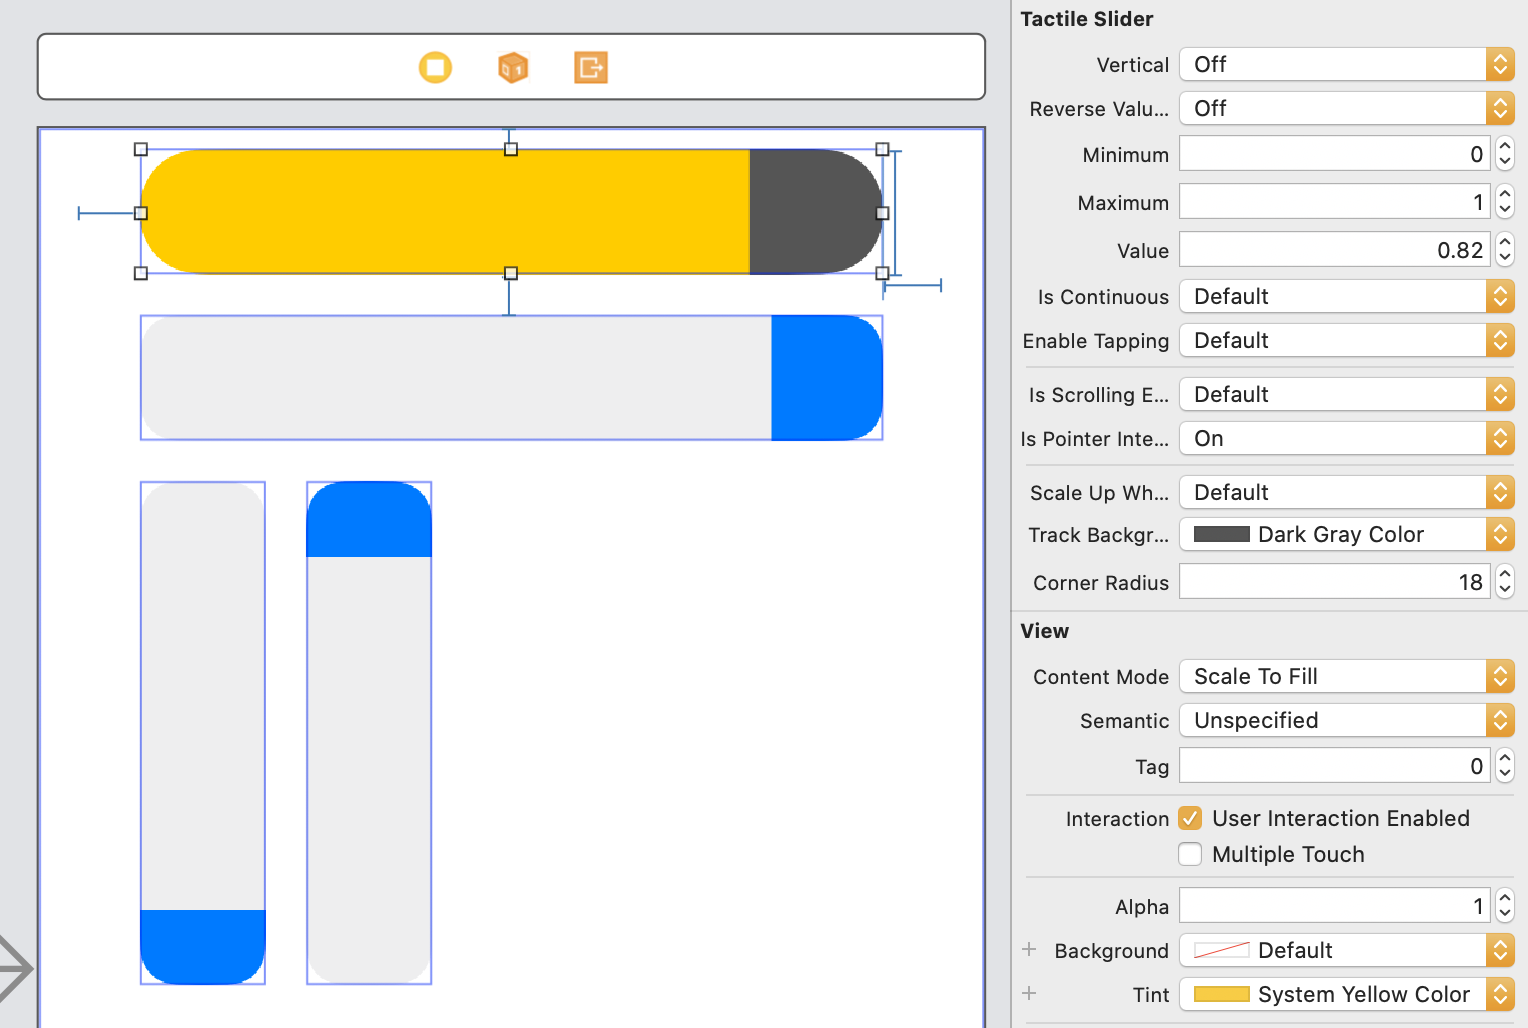 screenshot of Xcode Interface Builder demonstrating a TactileSlider being customized using the graphical interface